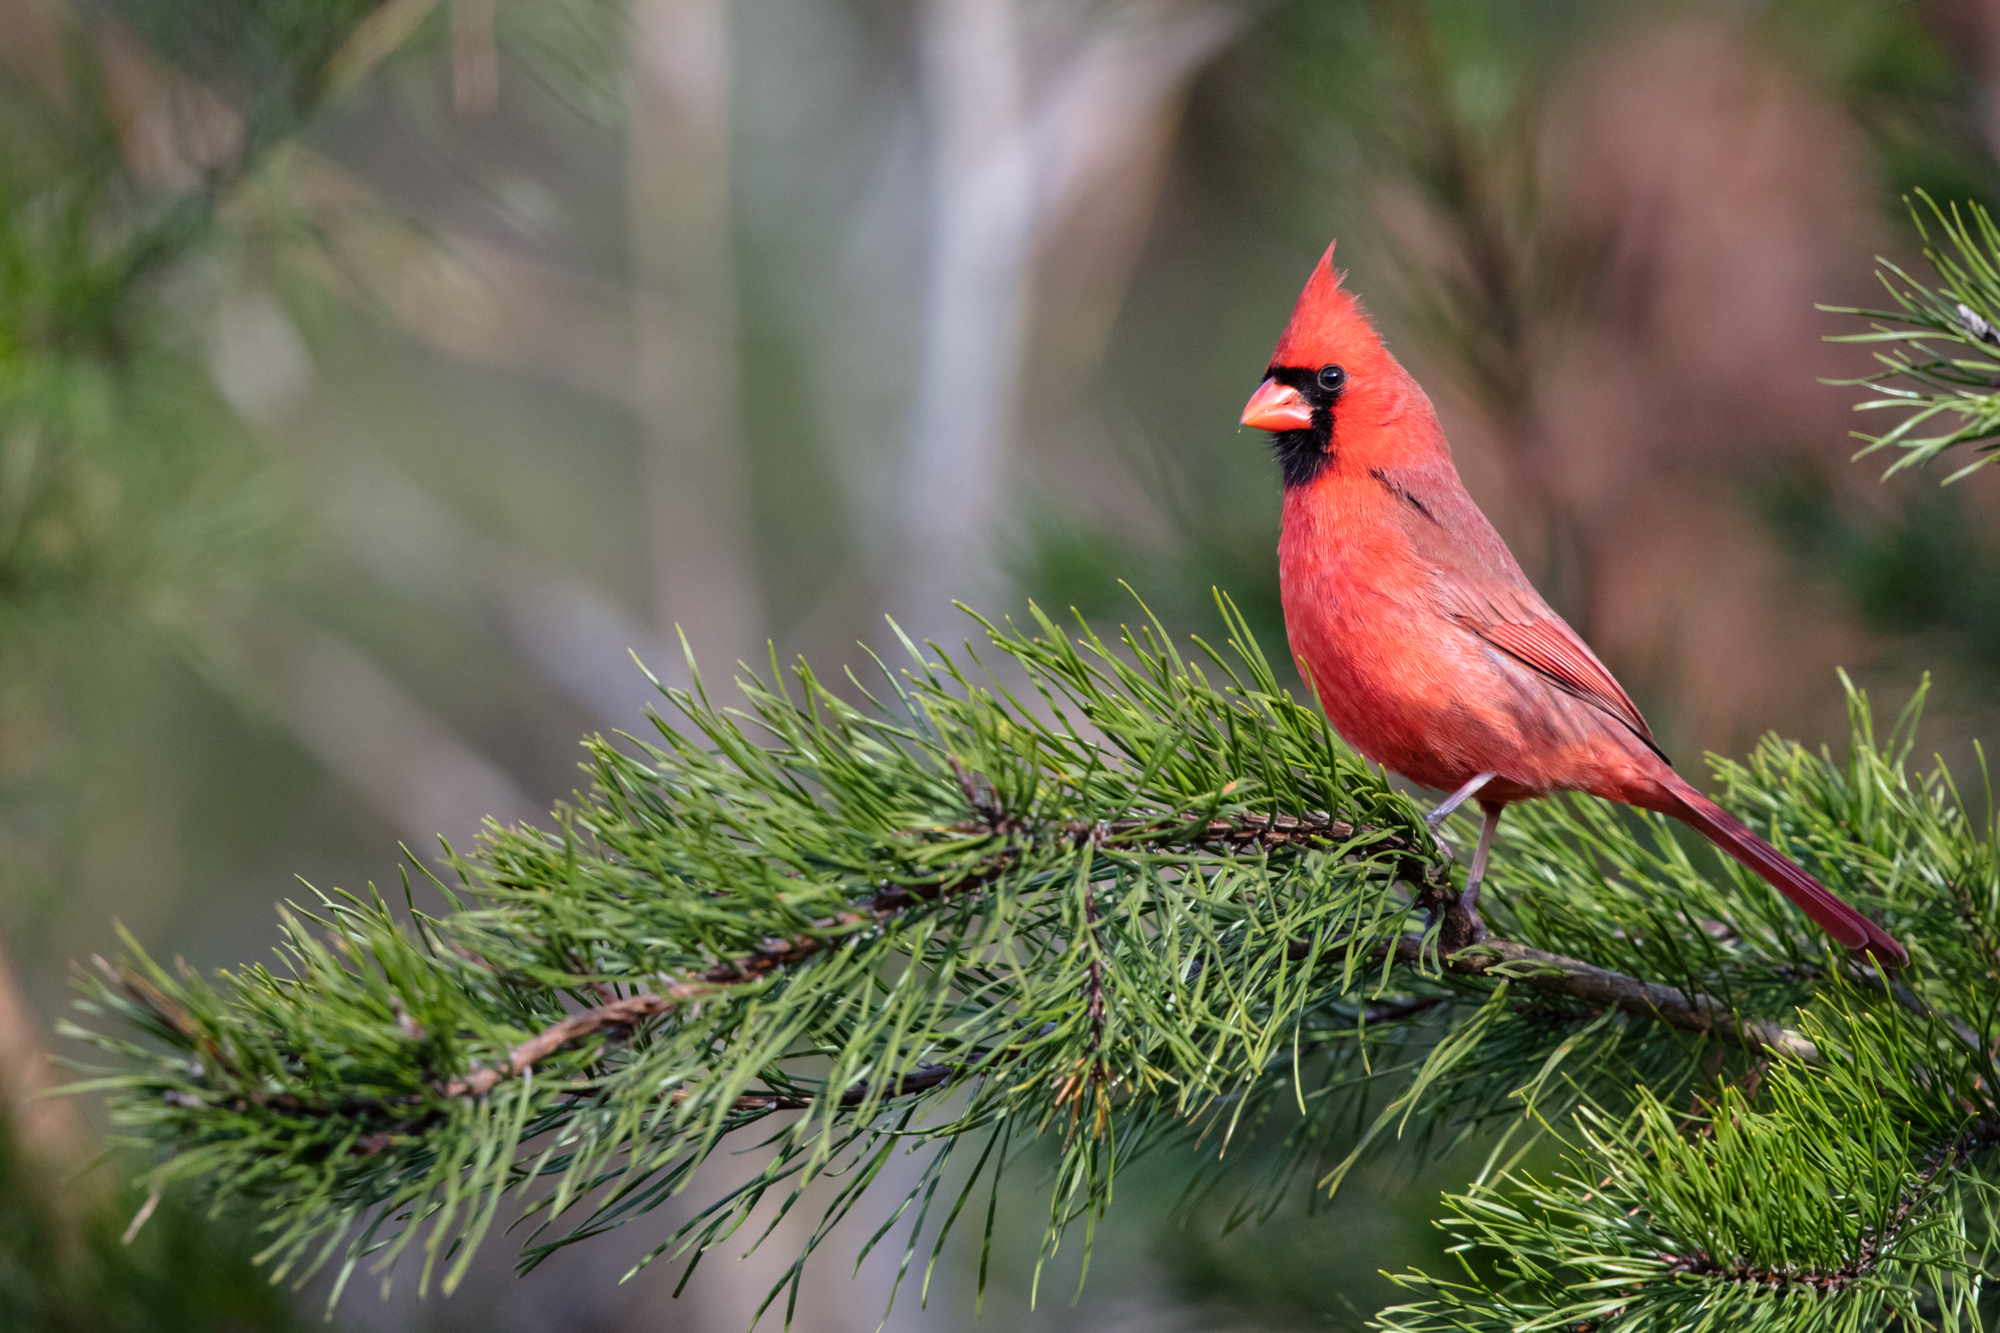 Northern Cardinal - Canon 5DS with Canon EF500mm f/4L IS II USM +1.4x III. 700mm, f/5.6, 1/1250s, iso1600.